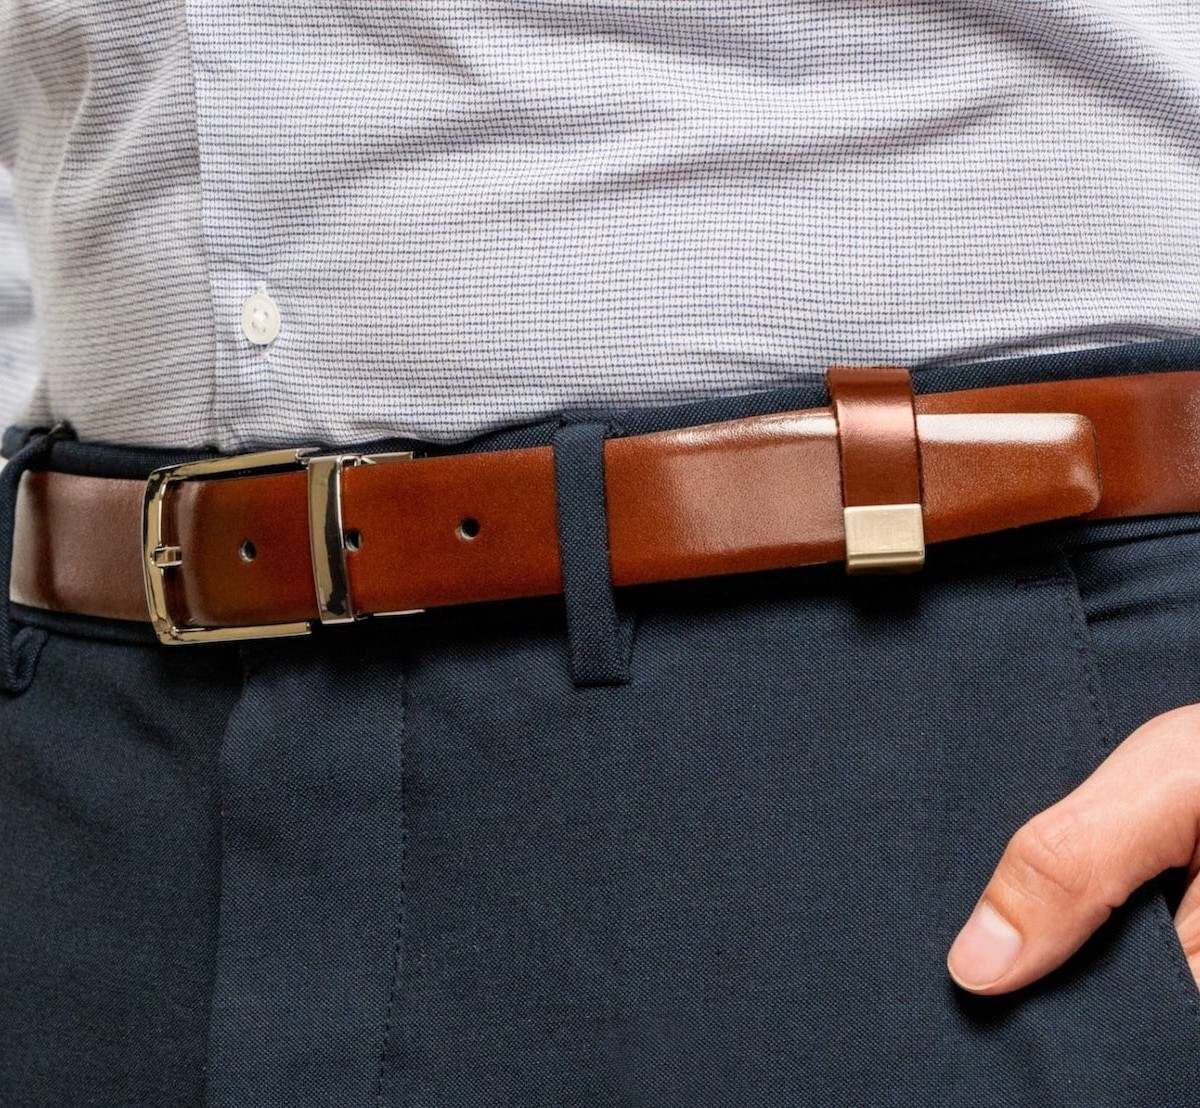 Beltpin Detachable Belt Loop keeps your outfit looking put together